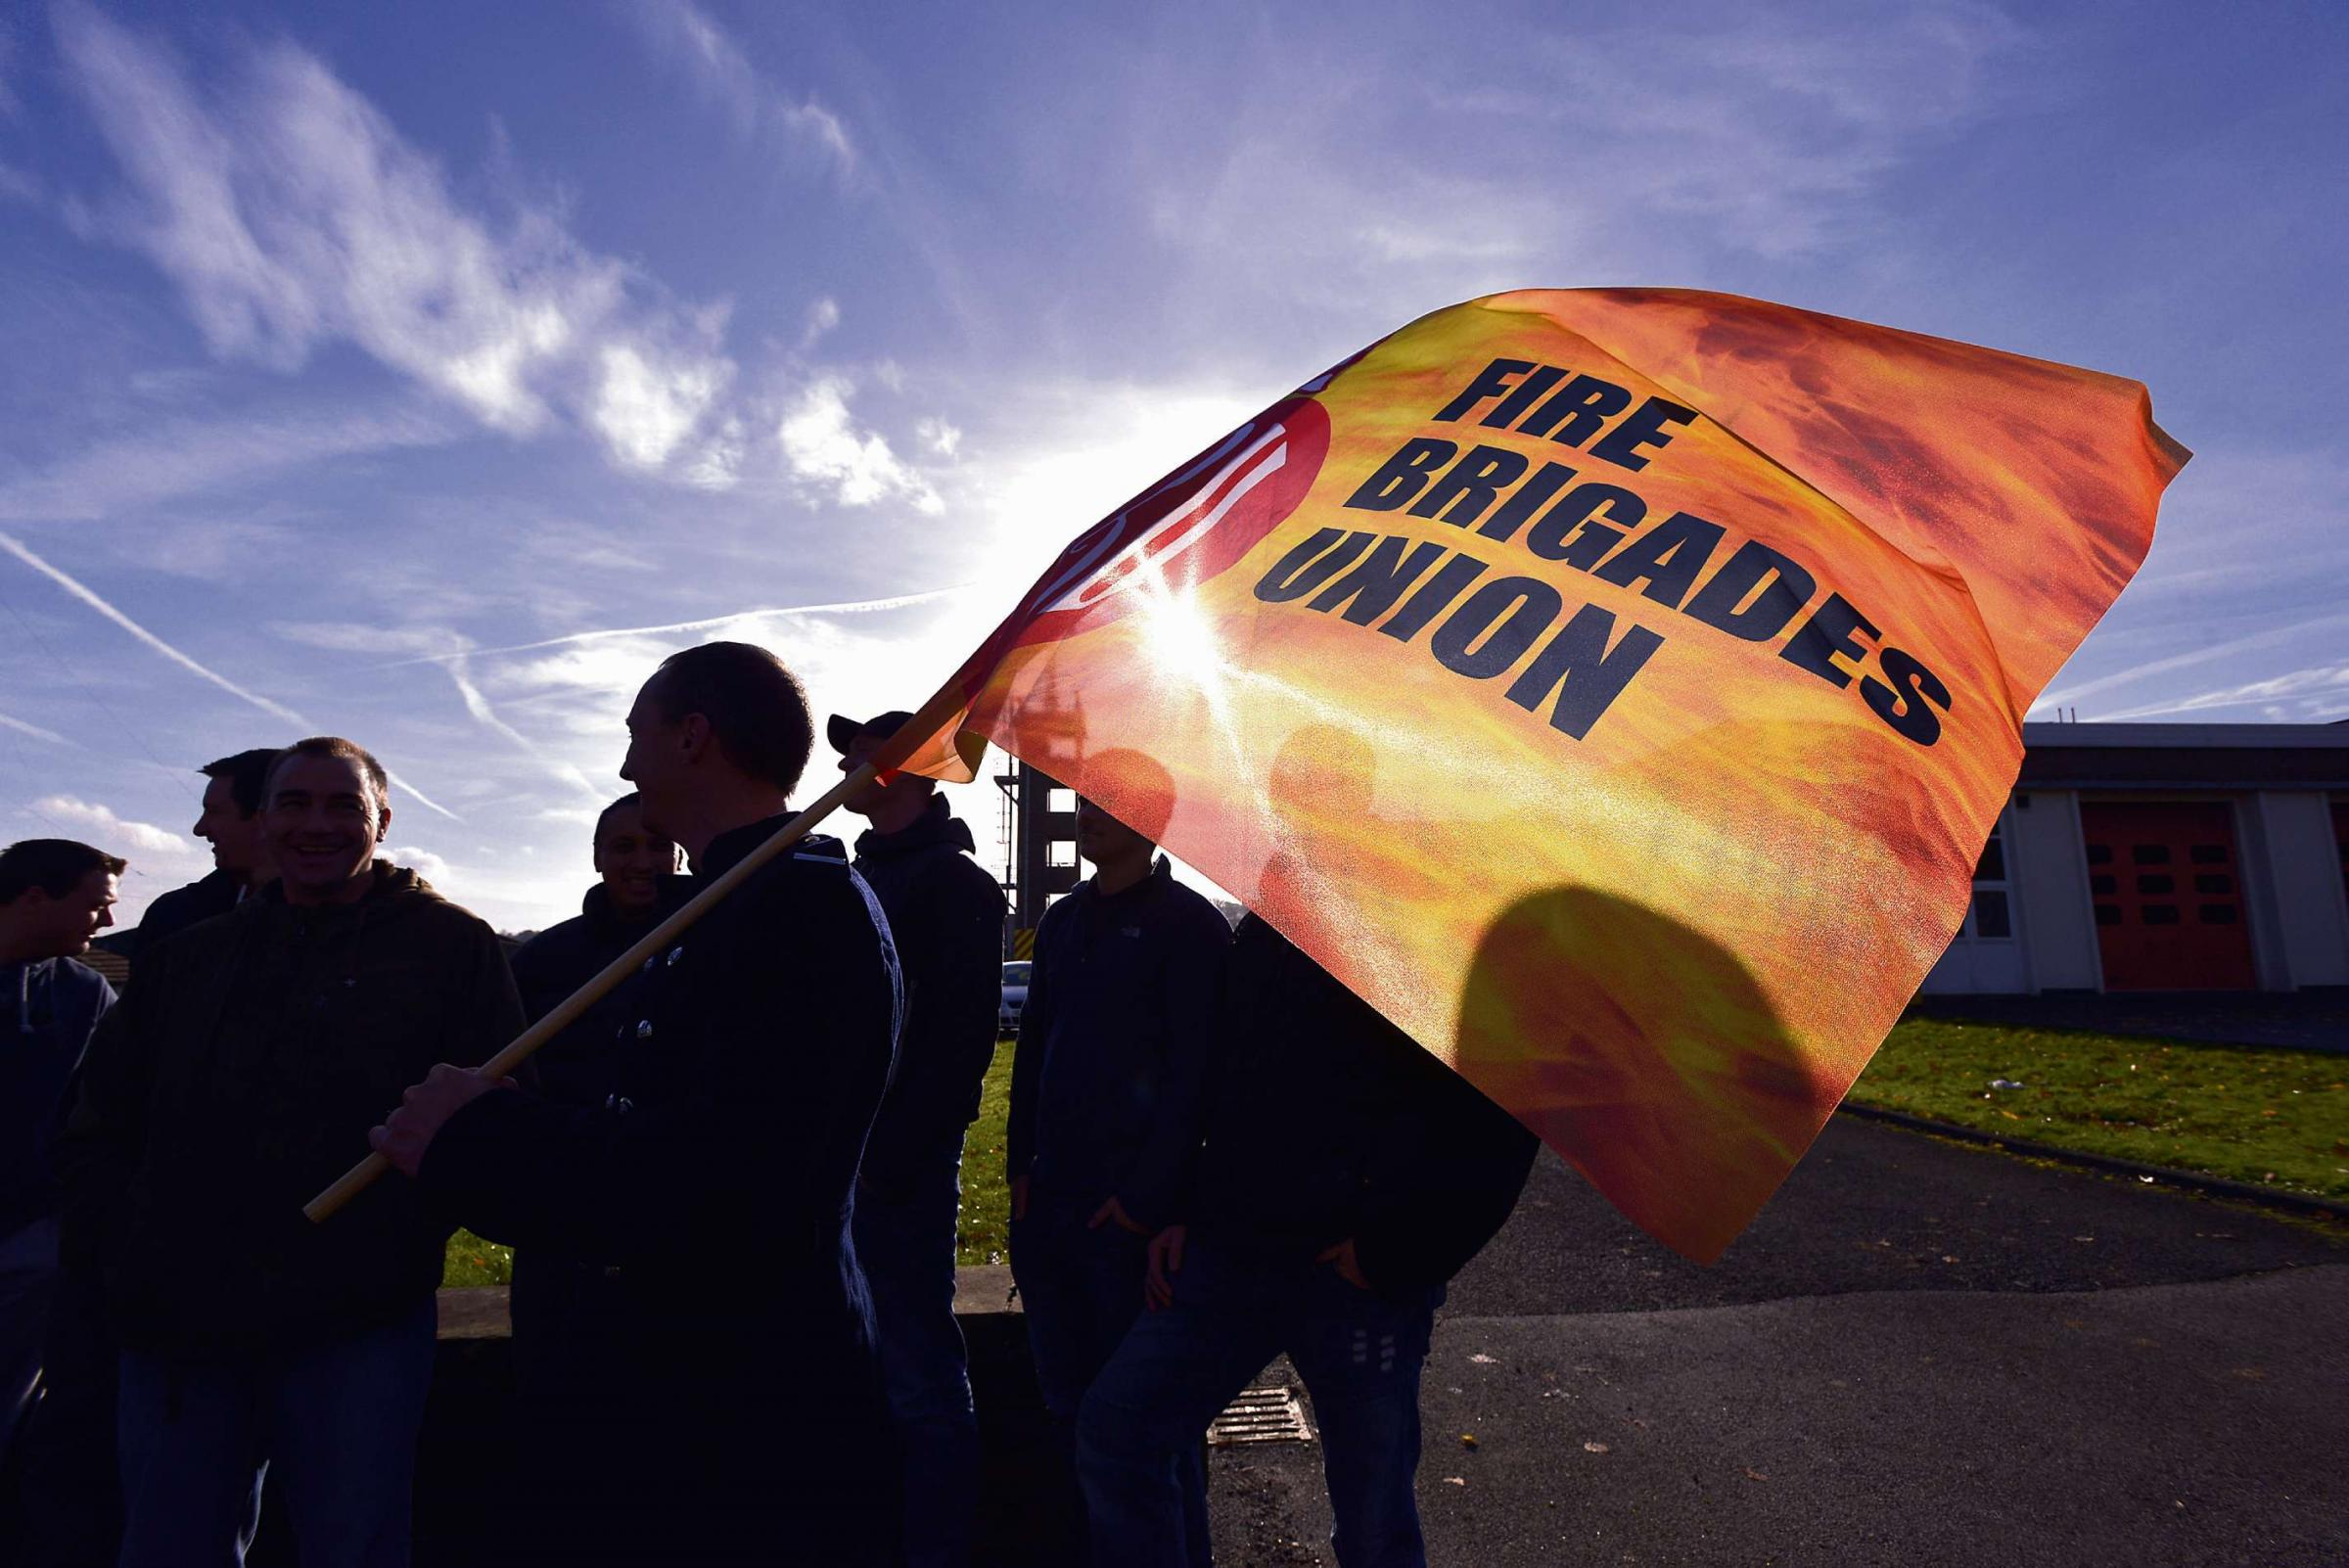 Firefighters set to strike for 8 days